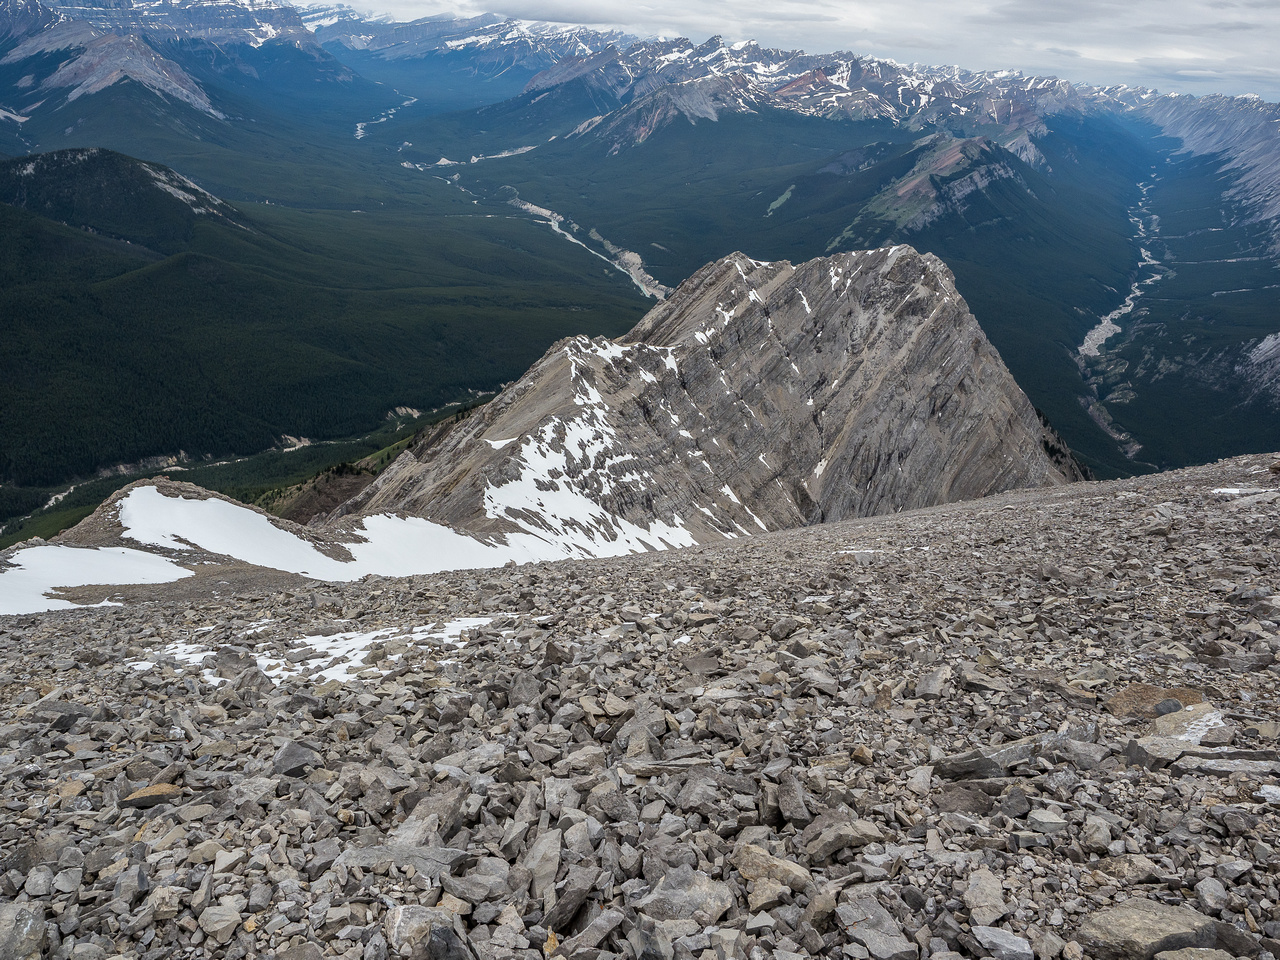 Starting my descent, looking at the ridge traverse to Sentinel Peak.